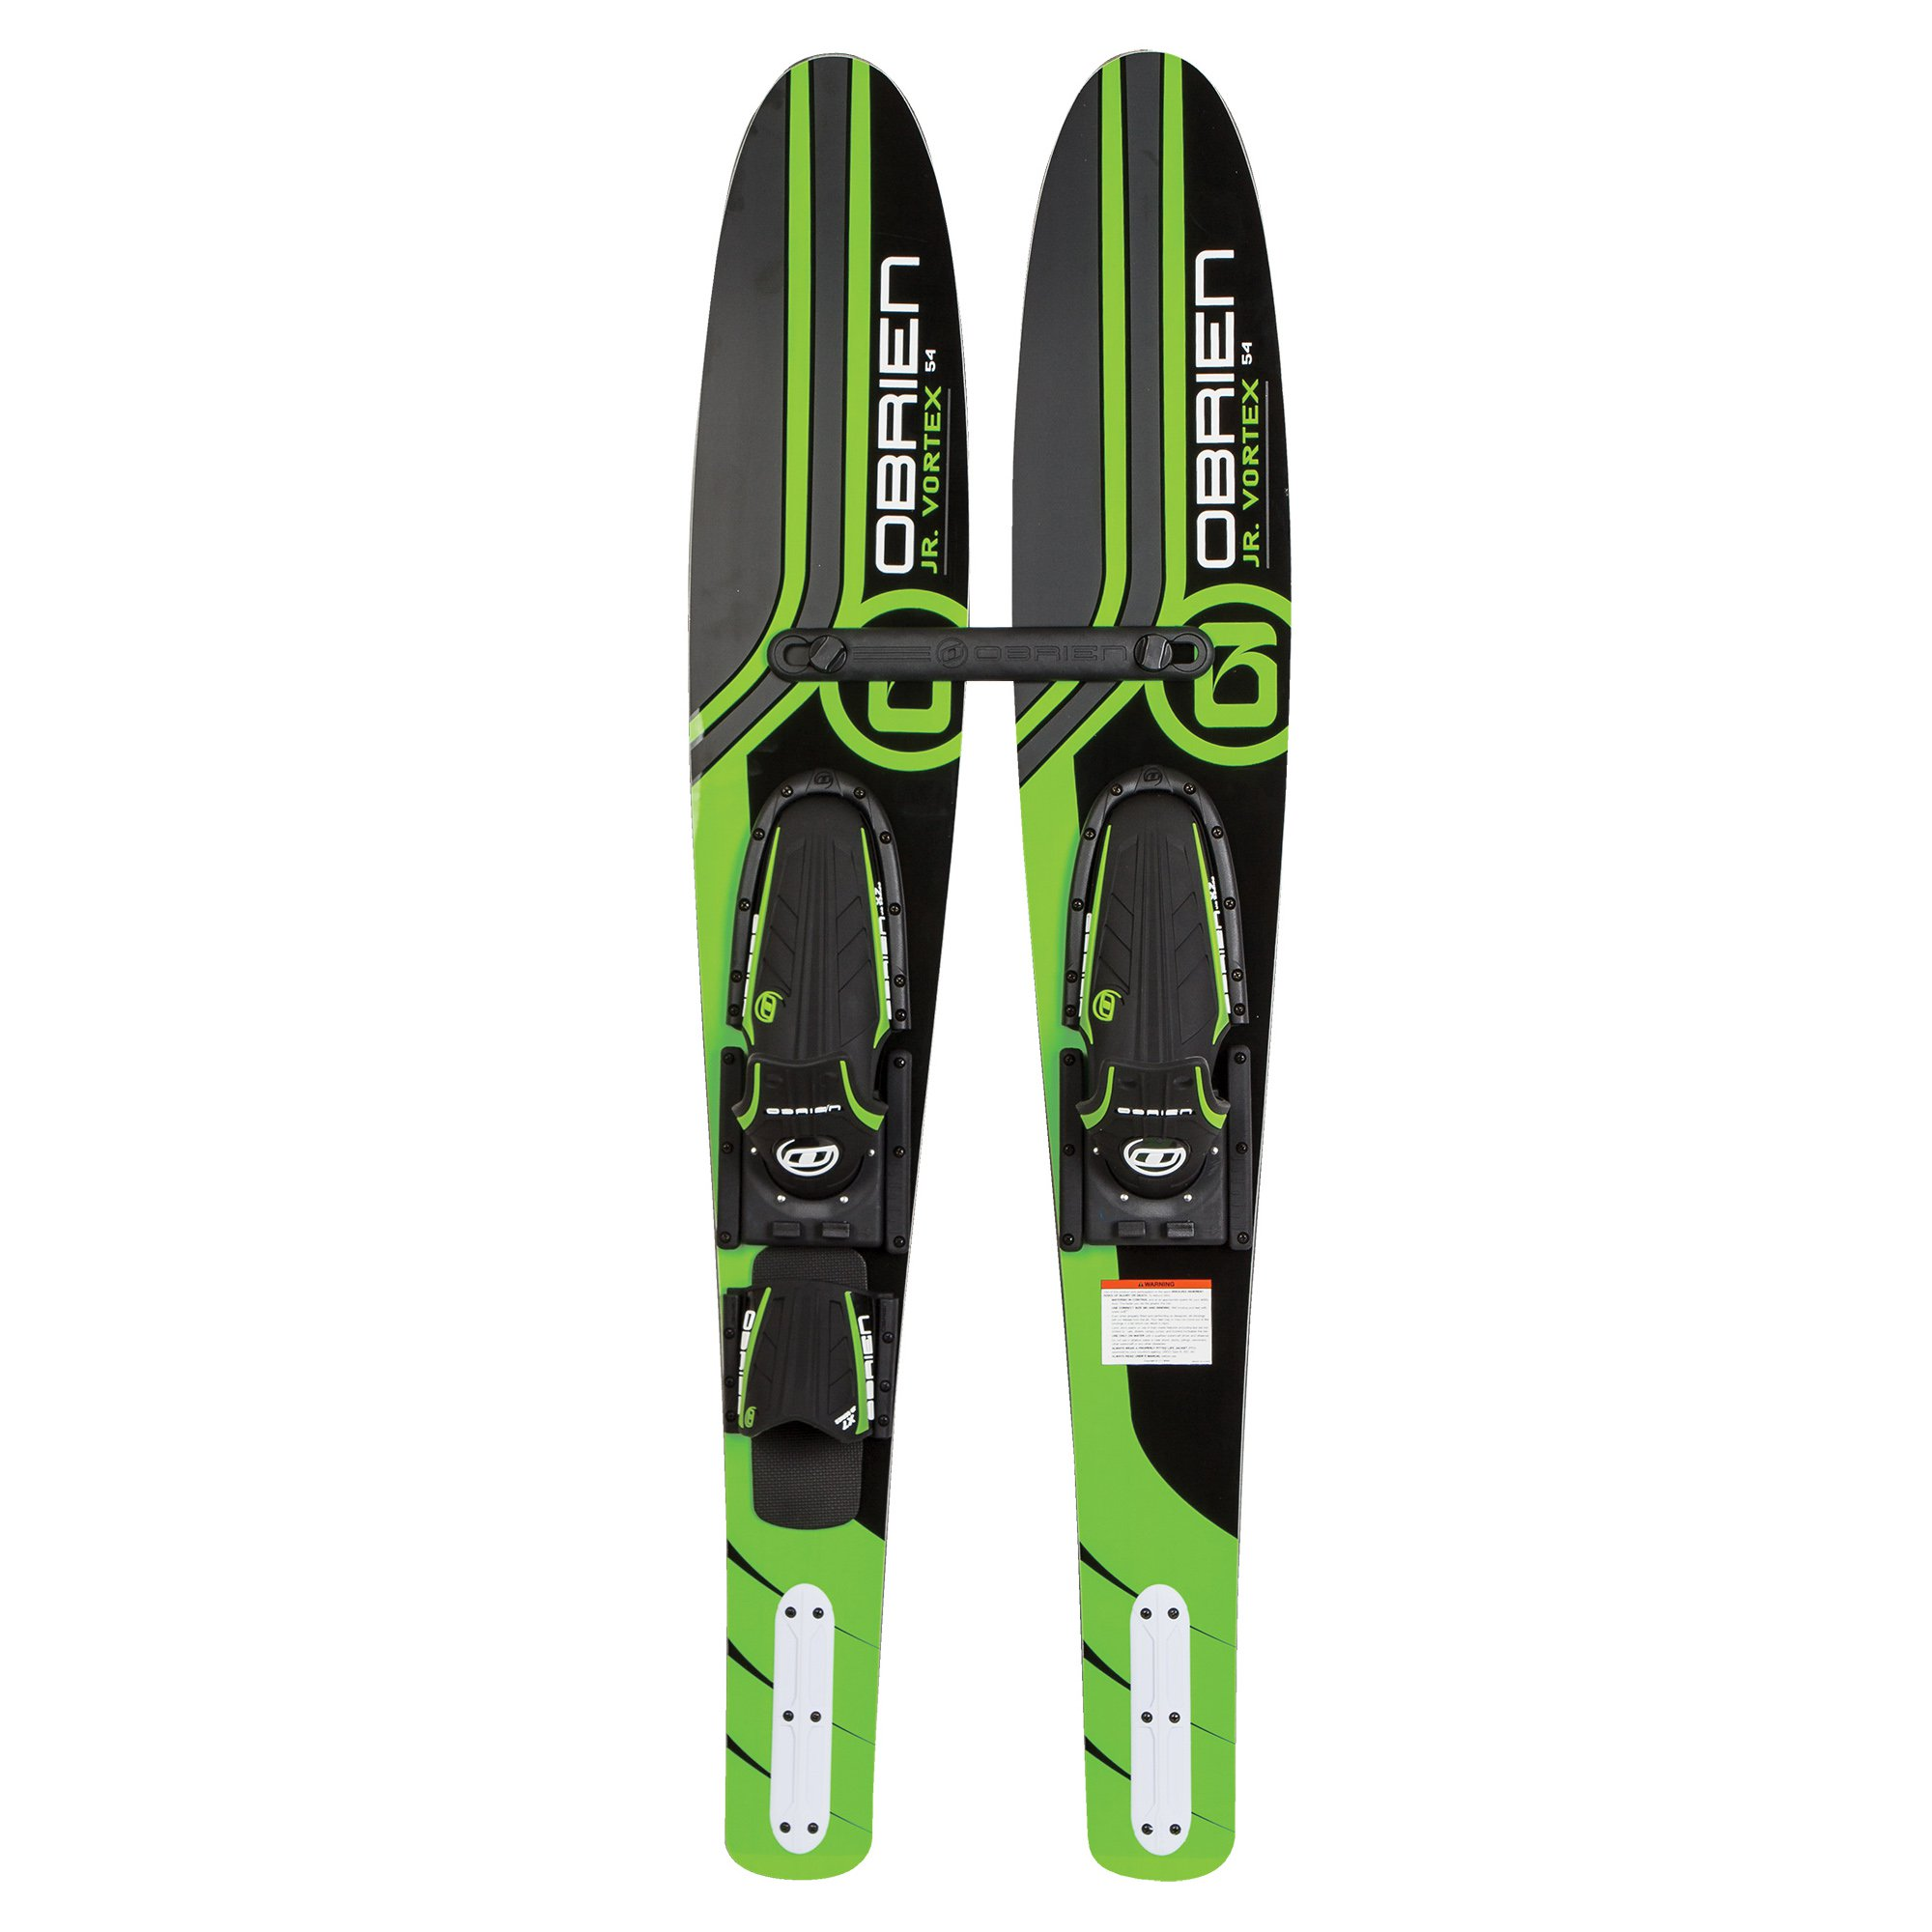 "OBrien 54"" Jr. Vortex Combo Water Skis with X7 Bindings for Kids 2-Mens 7, Green by O'Brien Watersports"